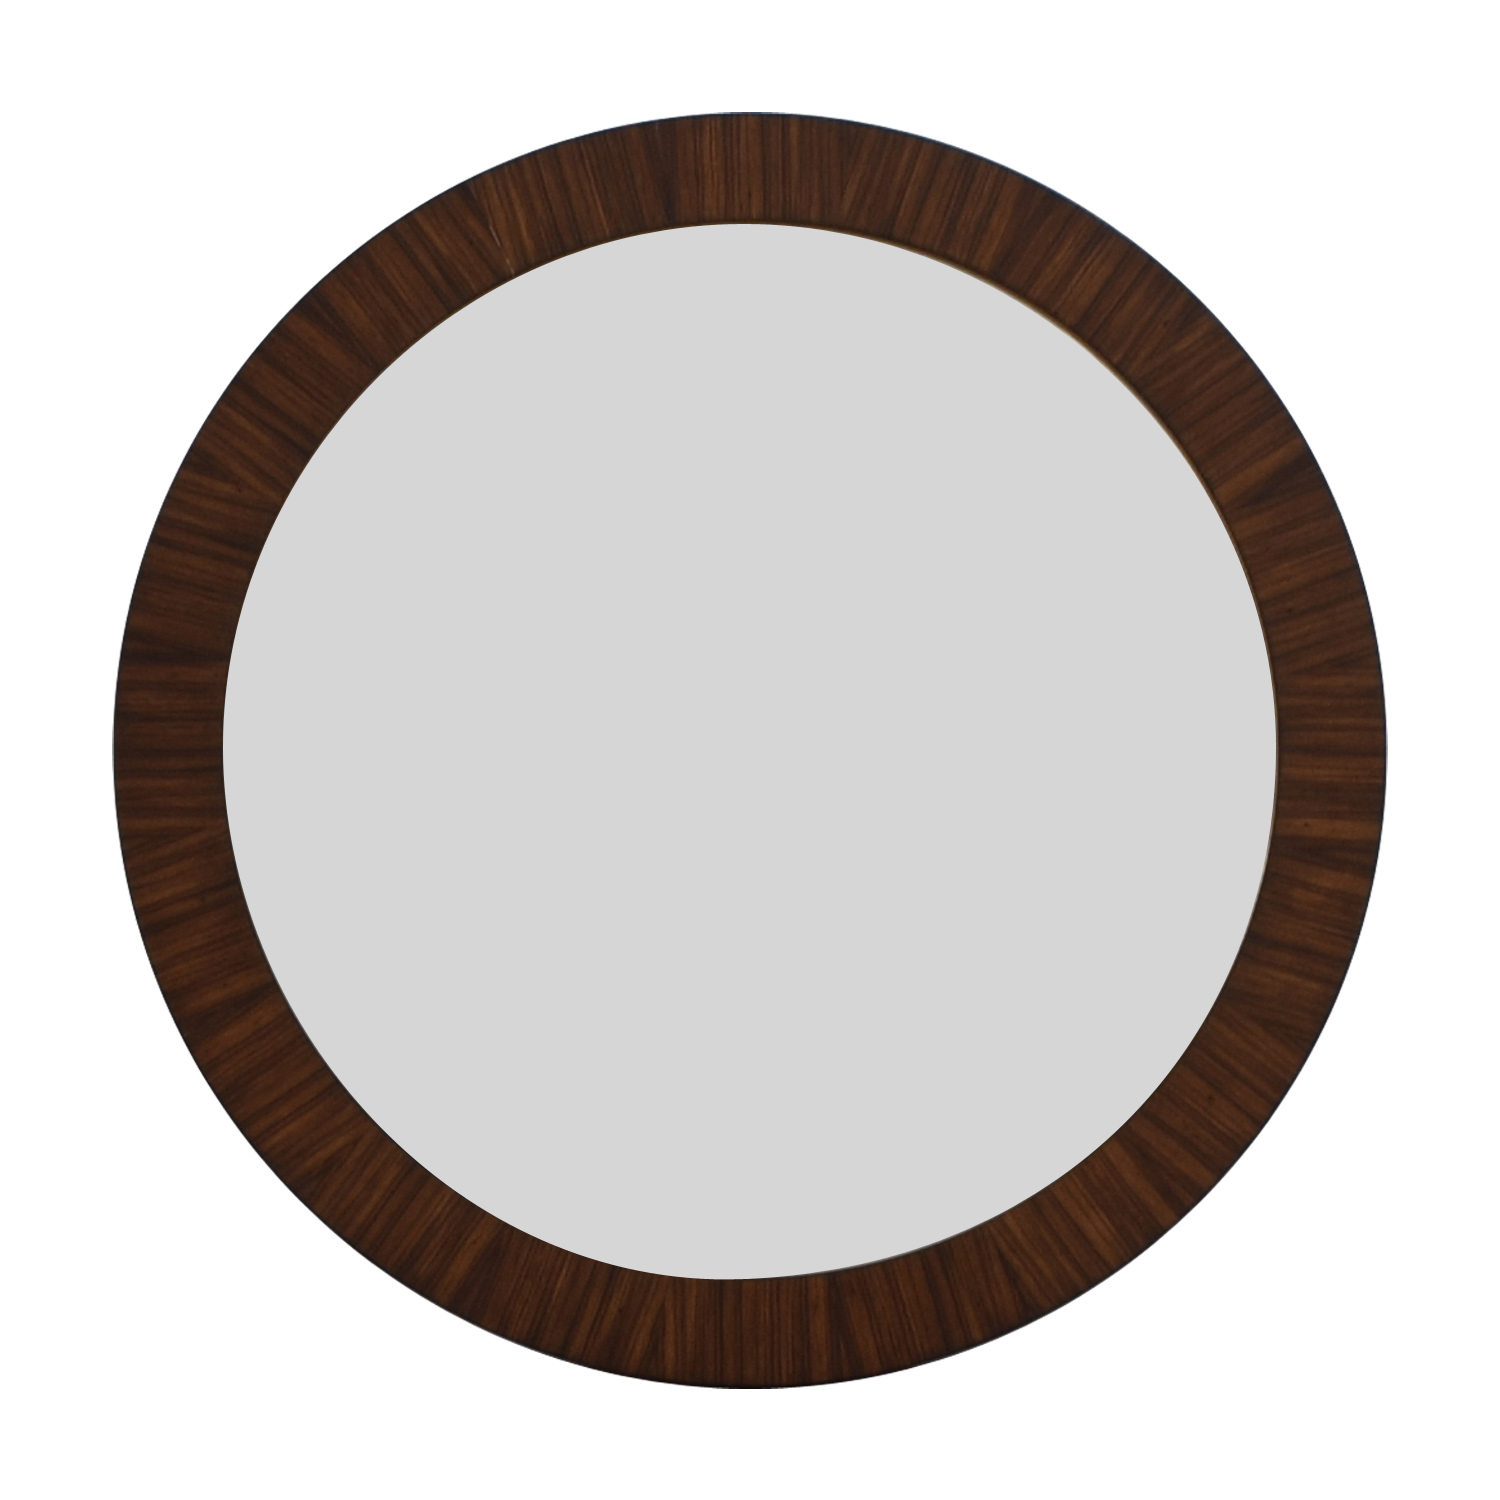 Uttermost Uttermost Wood Circular Wall Mirror discount